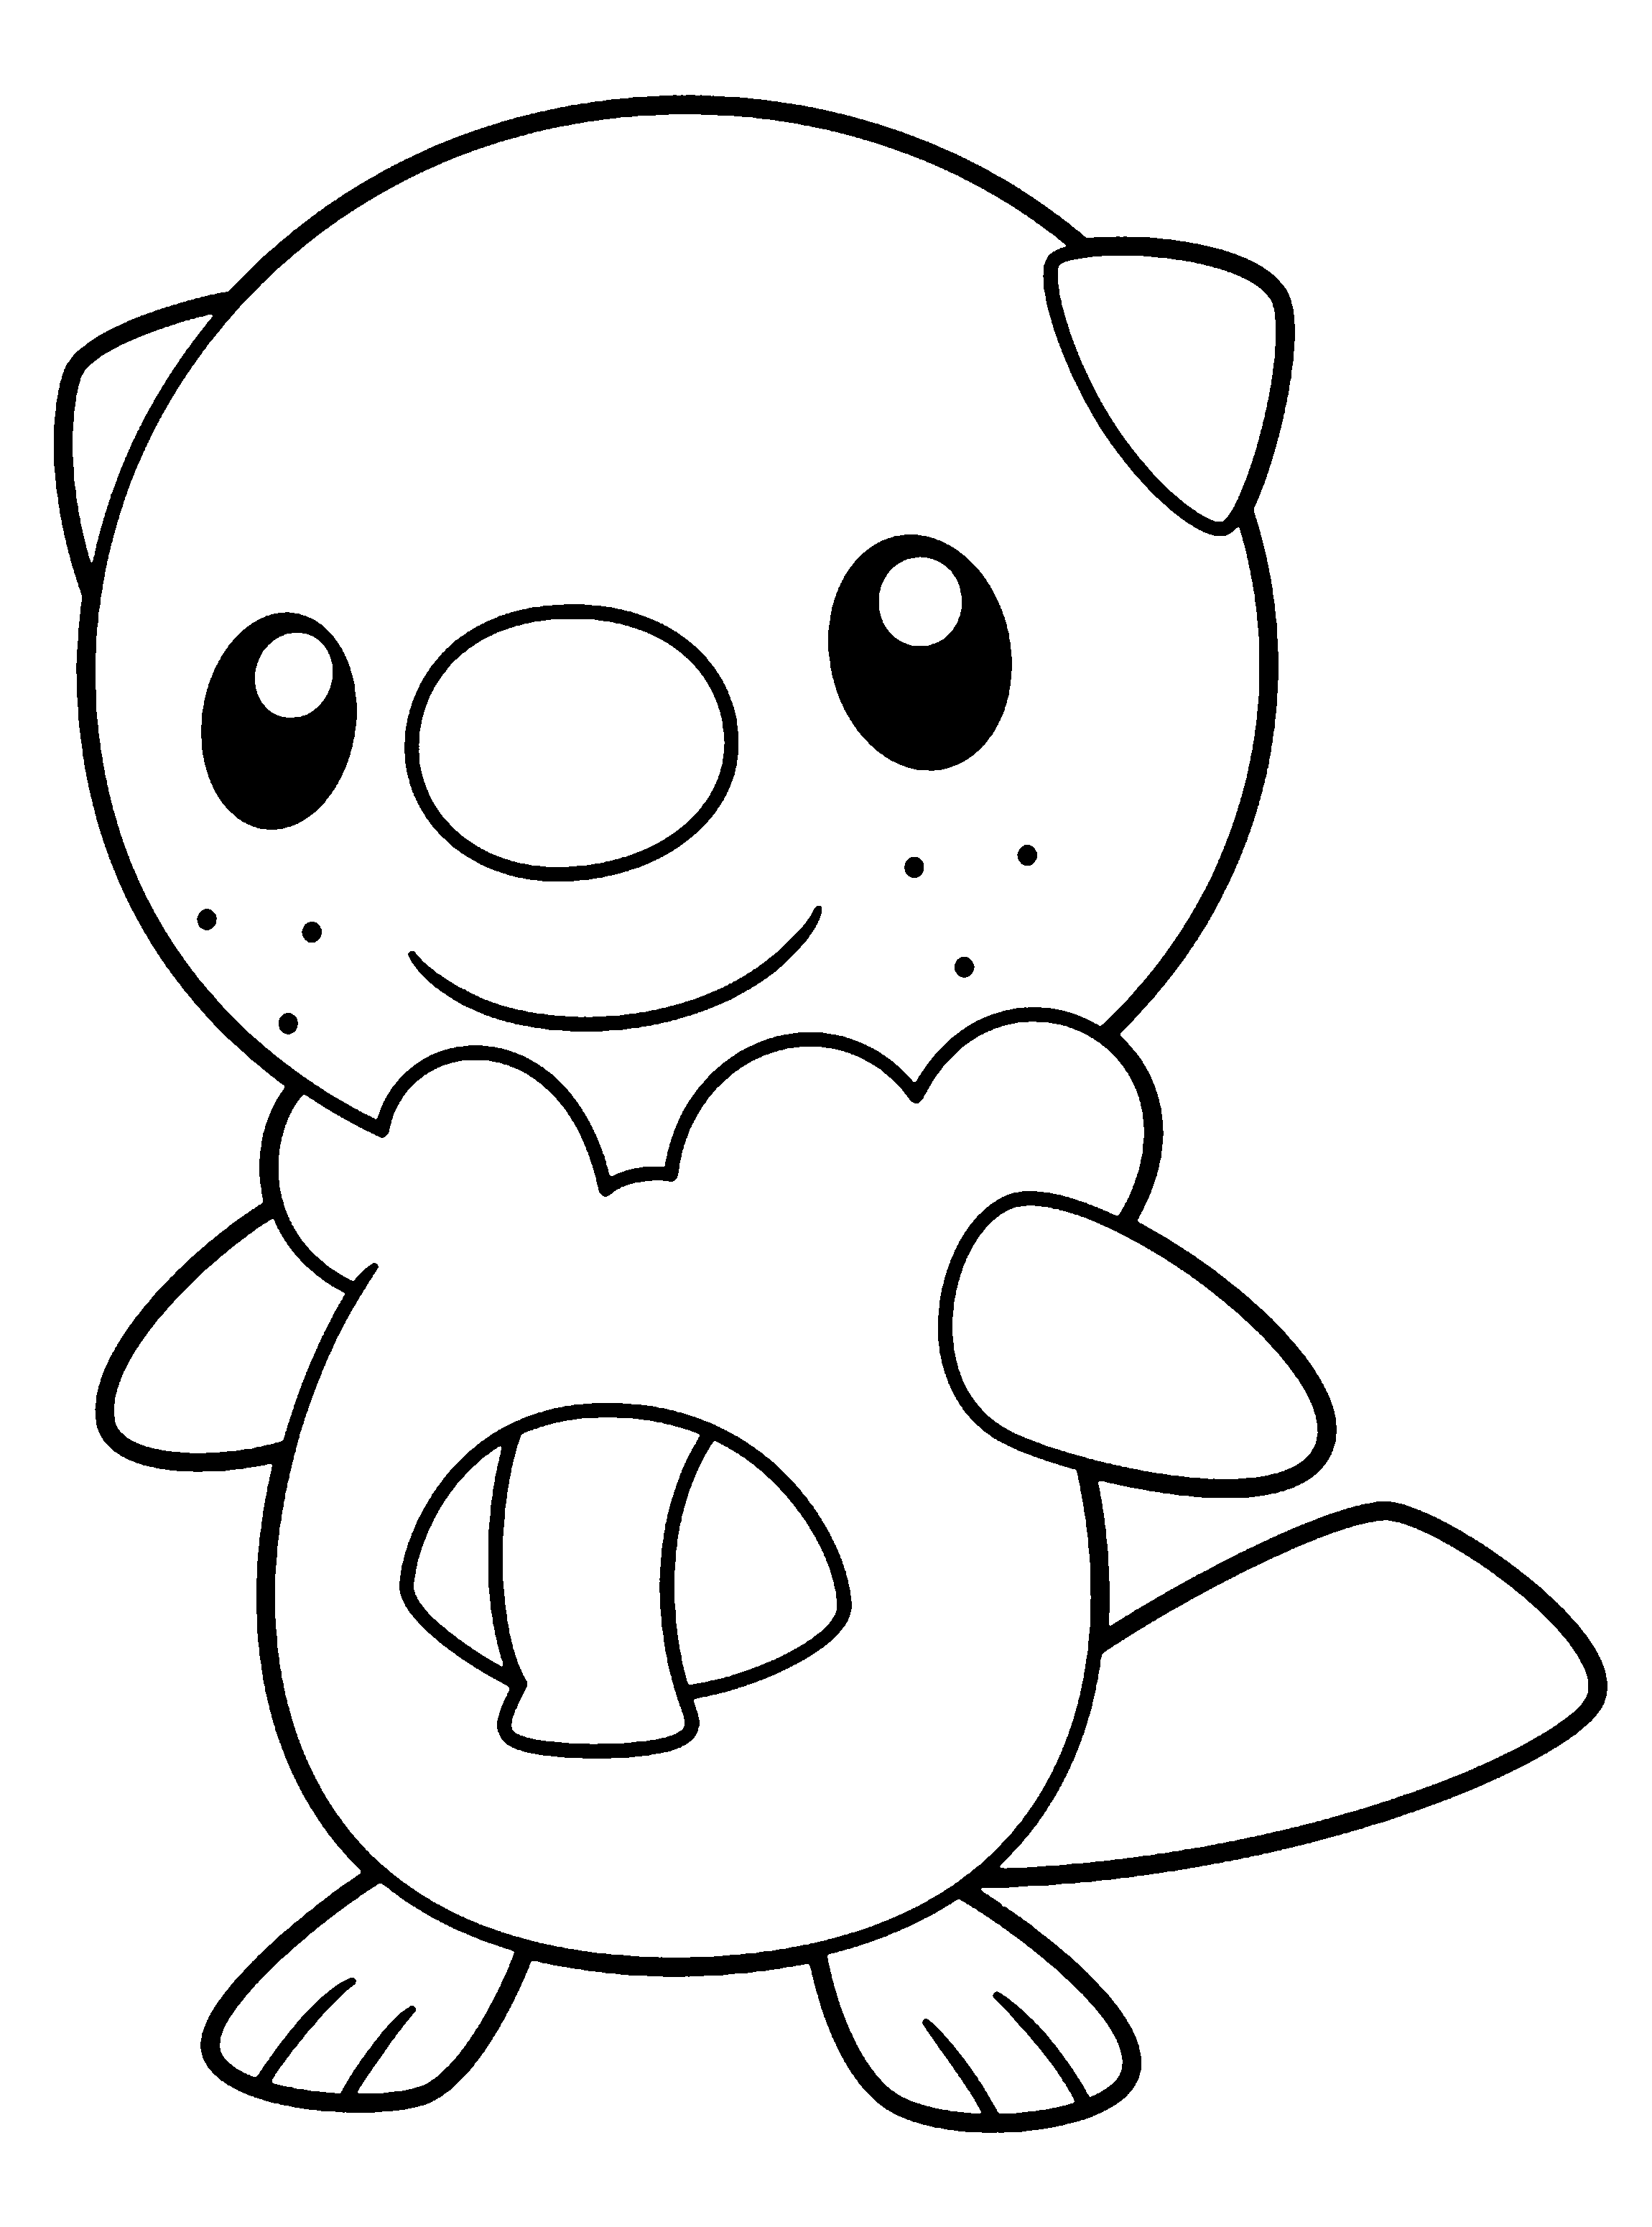 Coloring games of pokemon - Pokemon Black And White Coloring Pages Google Search